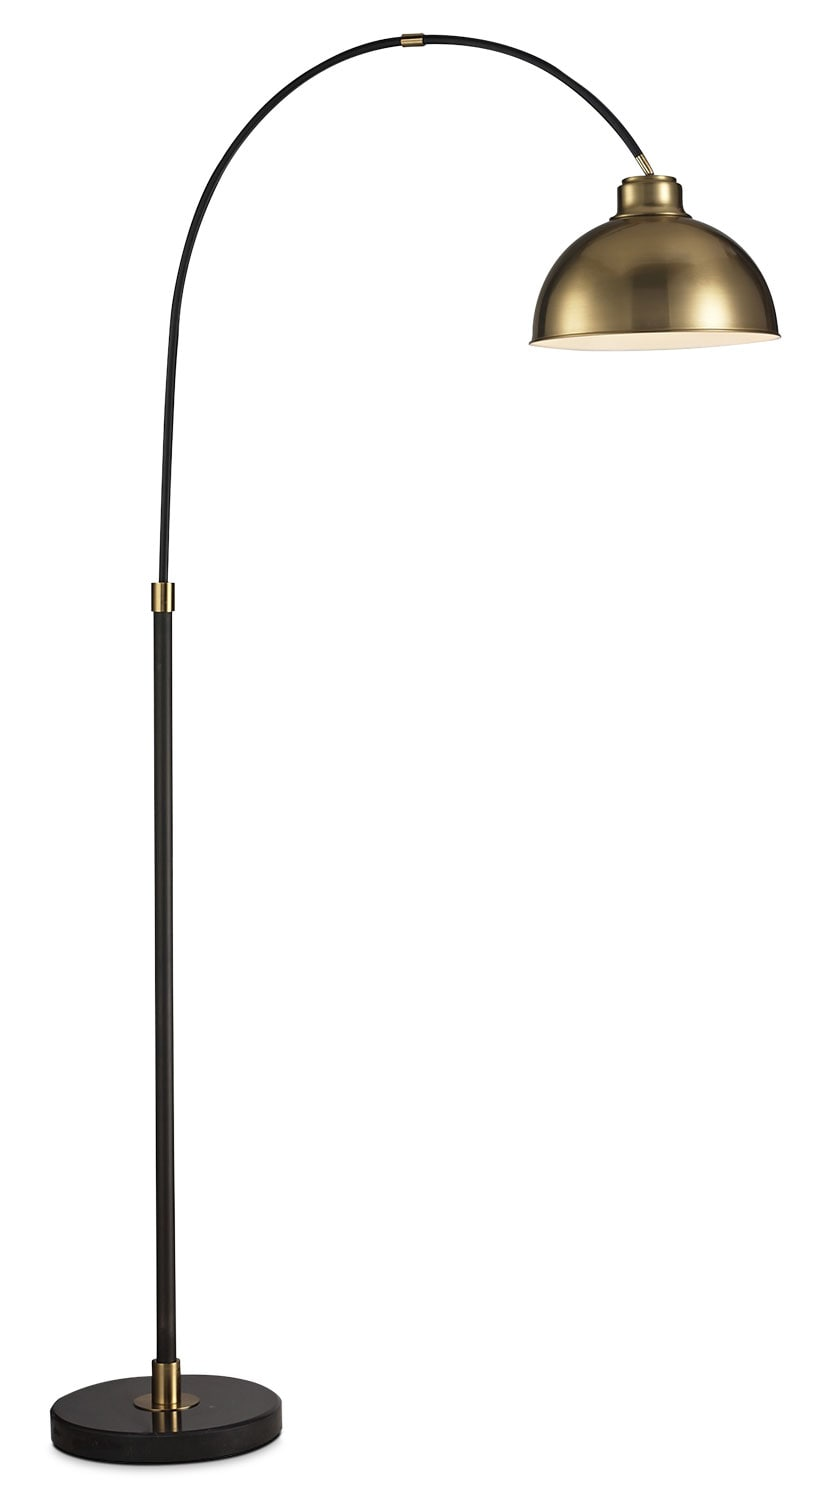 Black Arc Floor Lamp with Gold Metal Shade